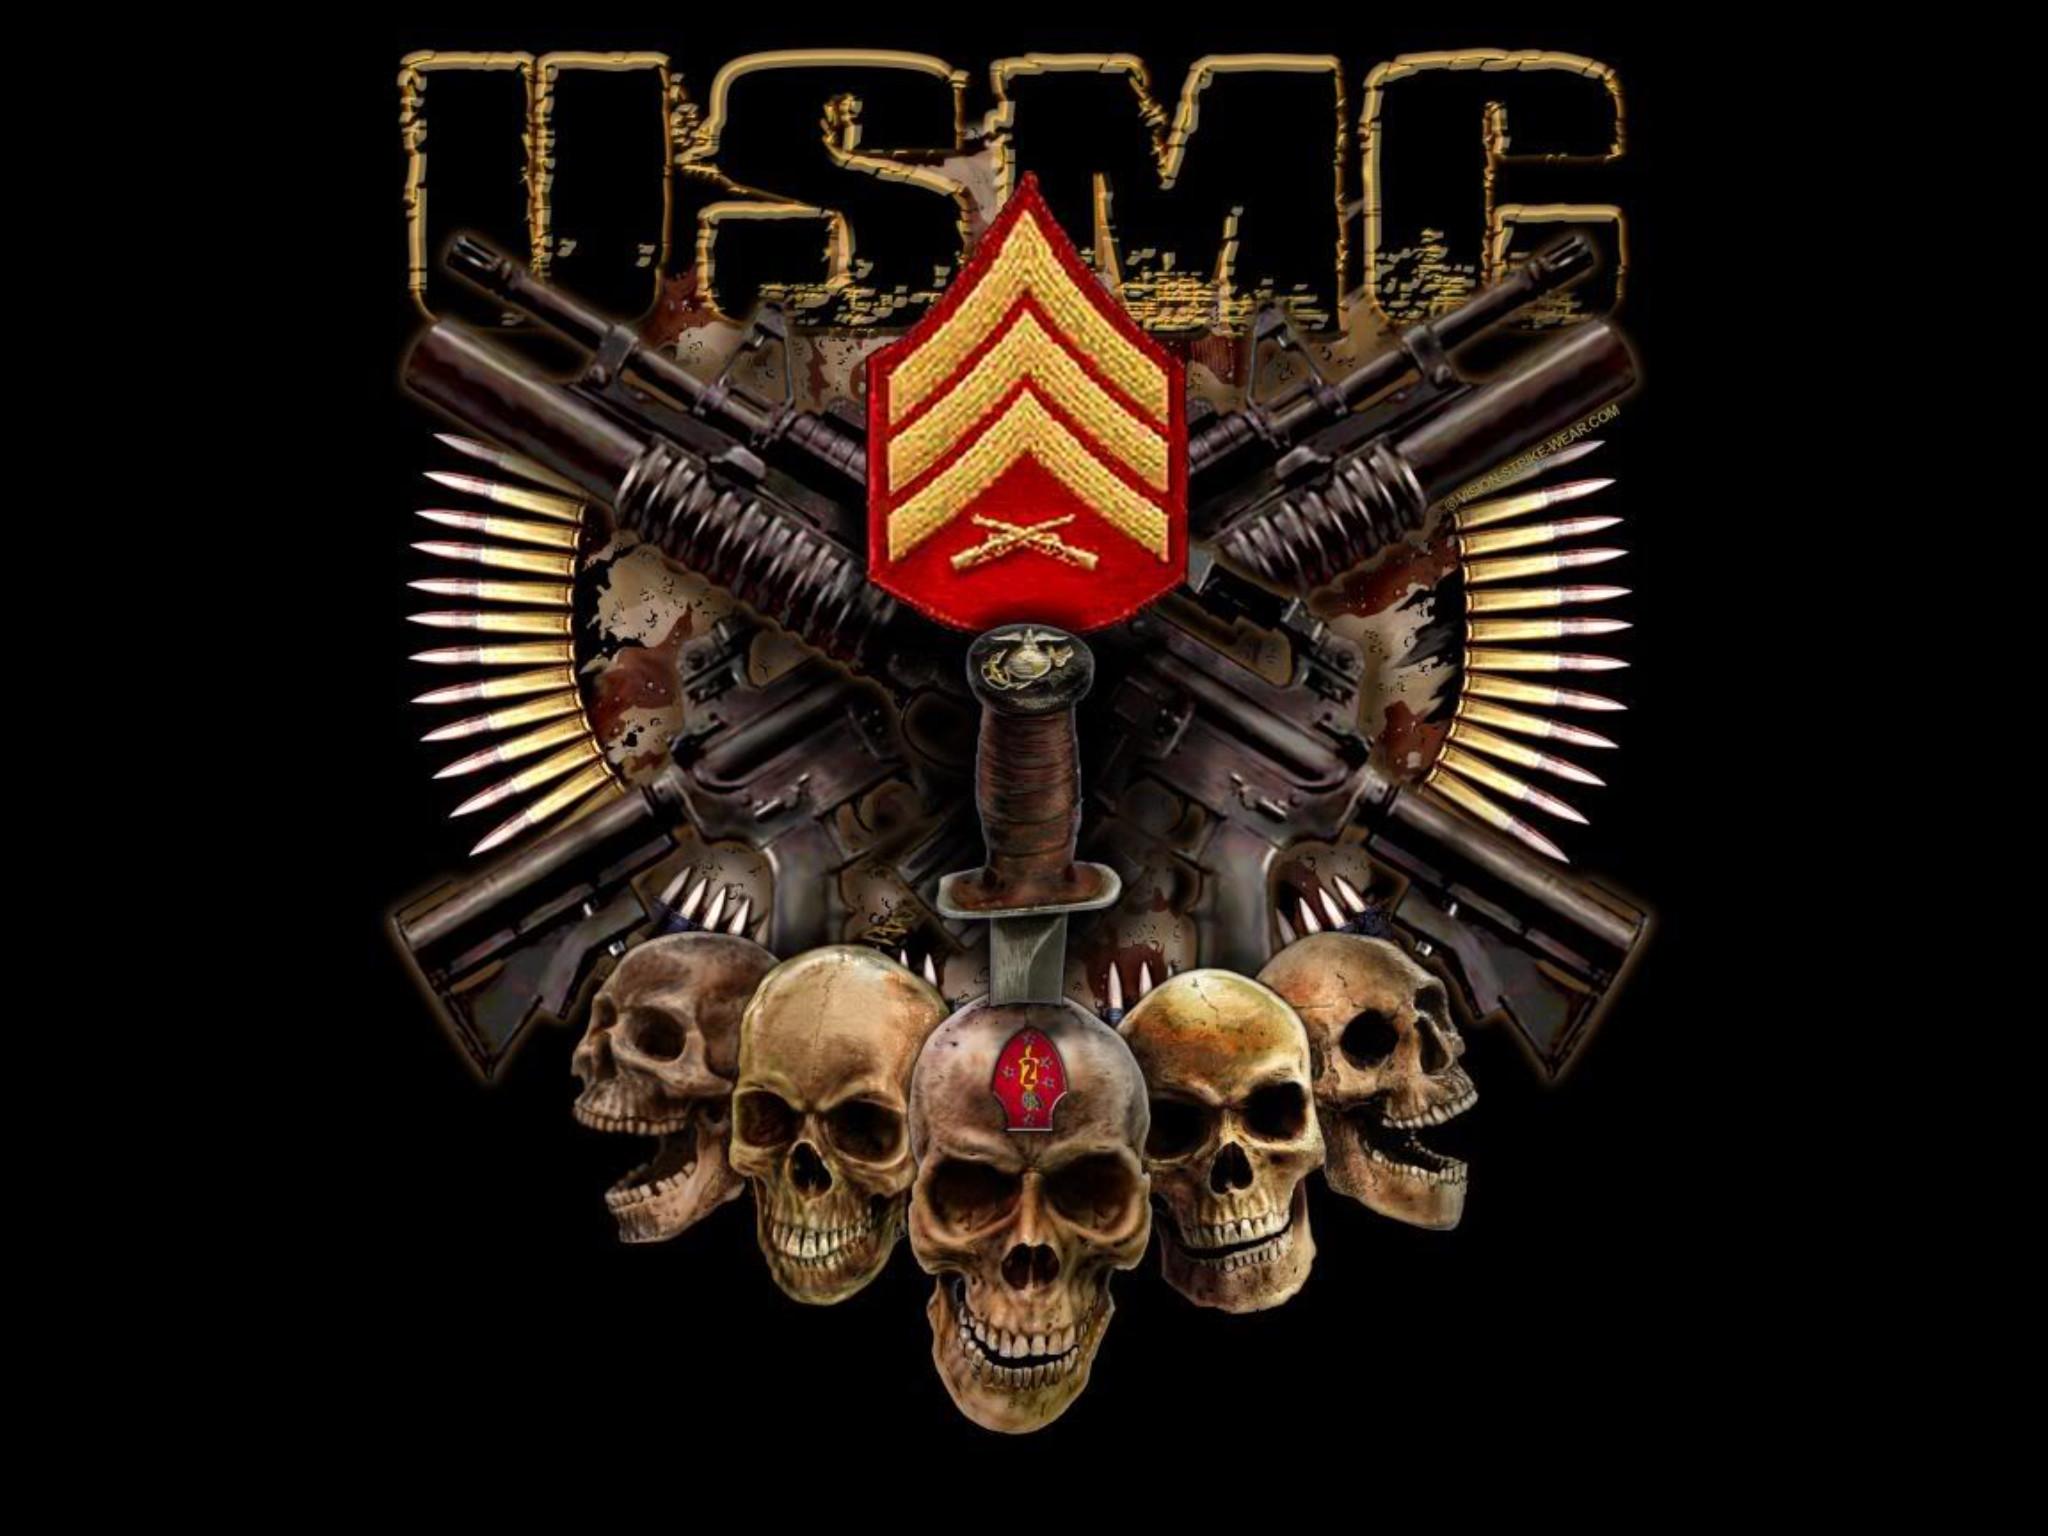 2048x1536 United States Marine Corps iPhone Wallpapers | Brand or Logo .